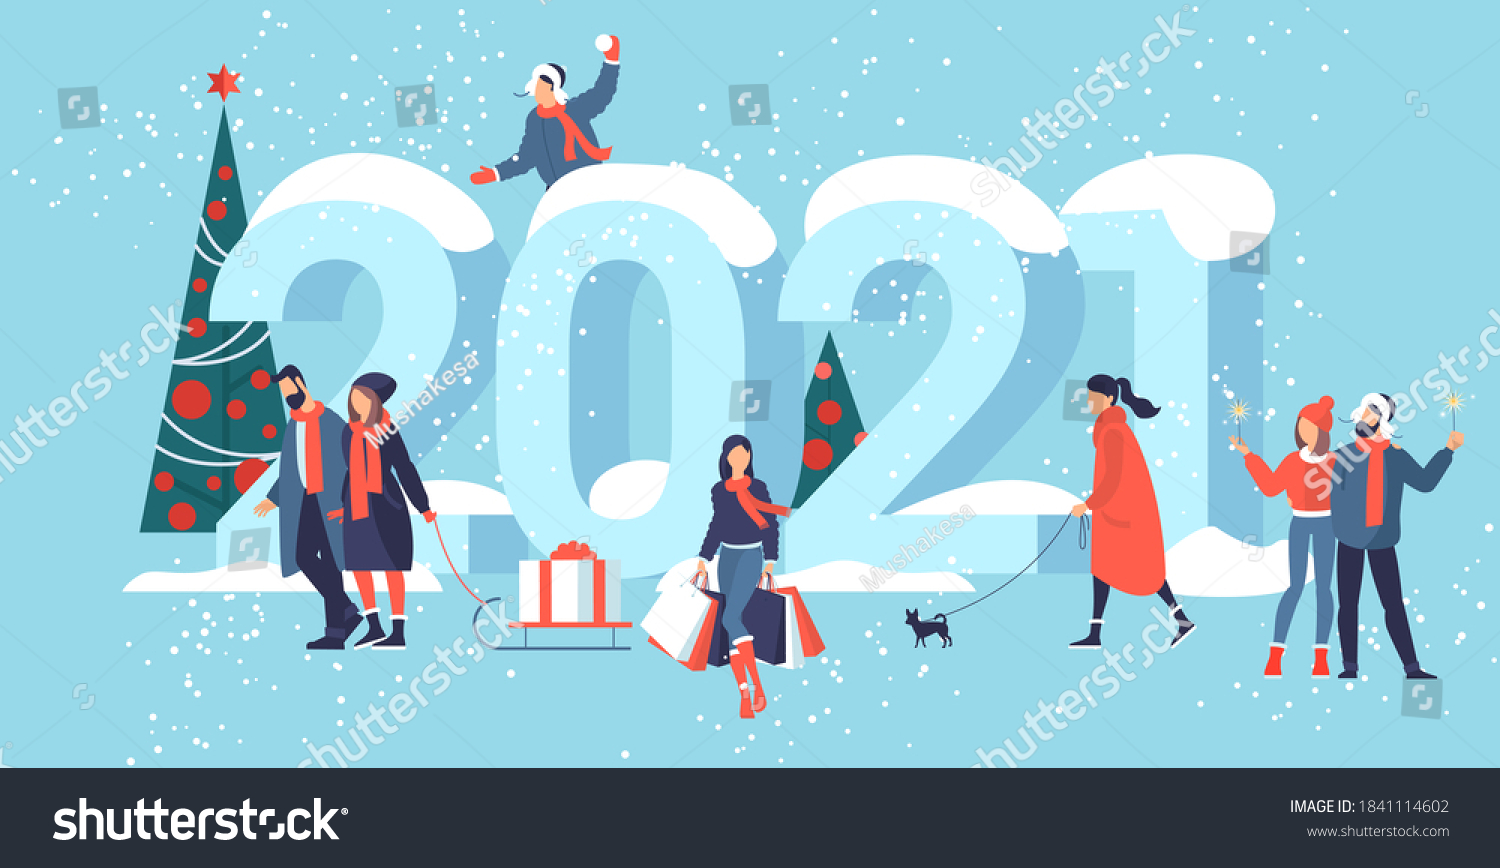 Flat design Christmas and New Year vector concept. Preparing to meet 2021 new year. Business people building the numbers 2021.  #1841114602